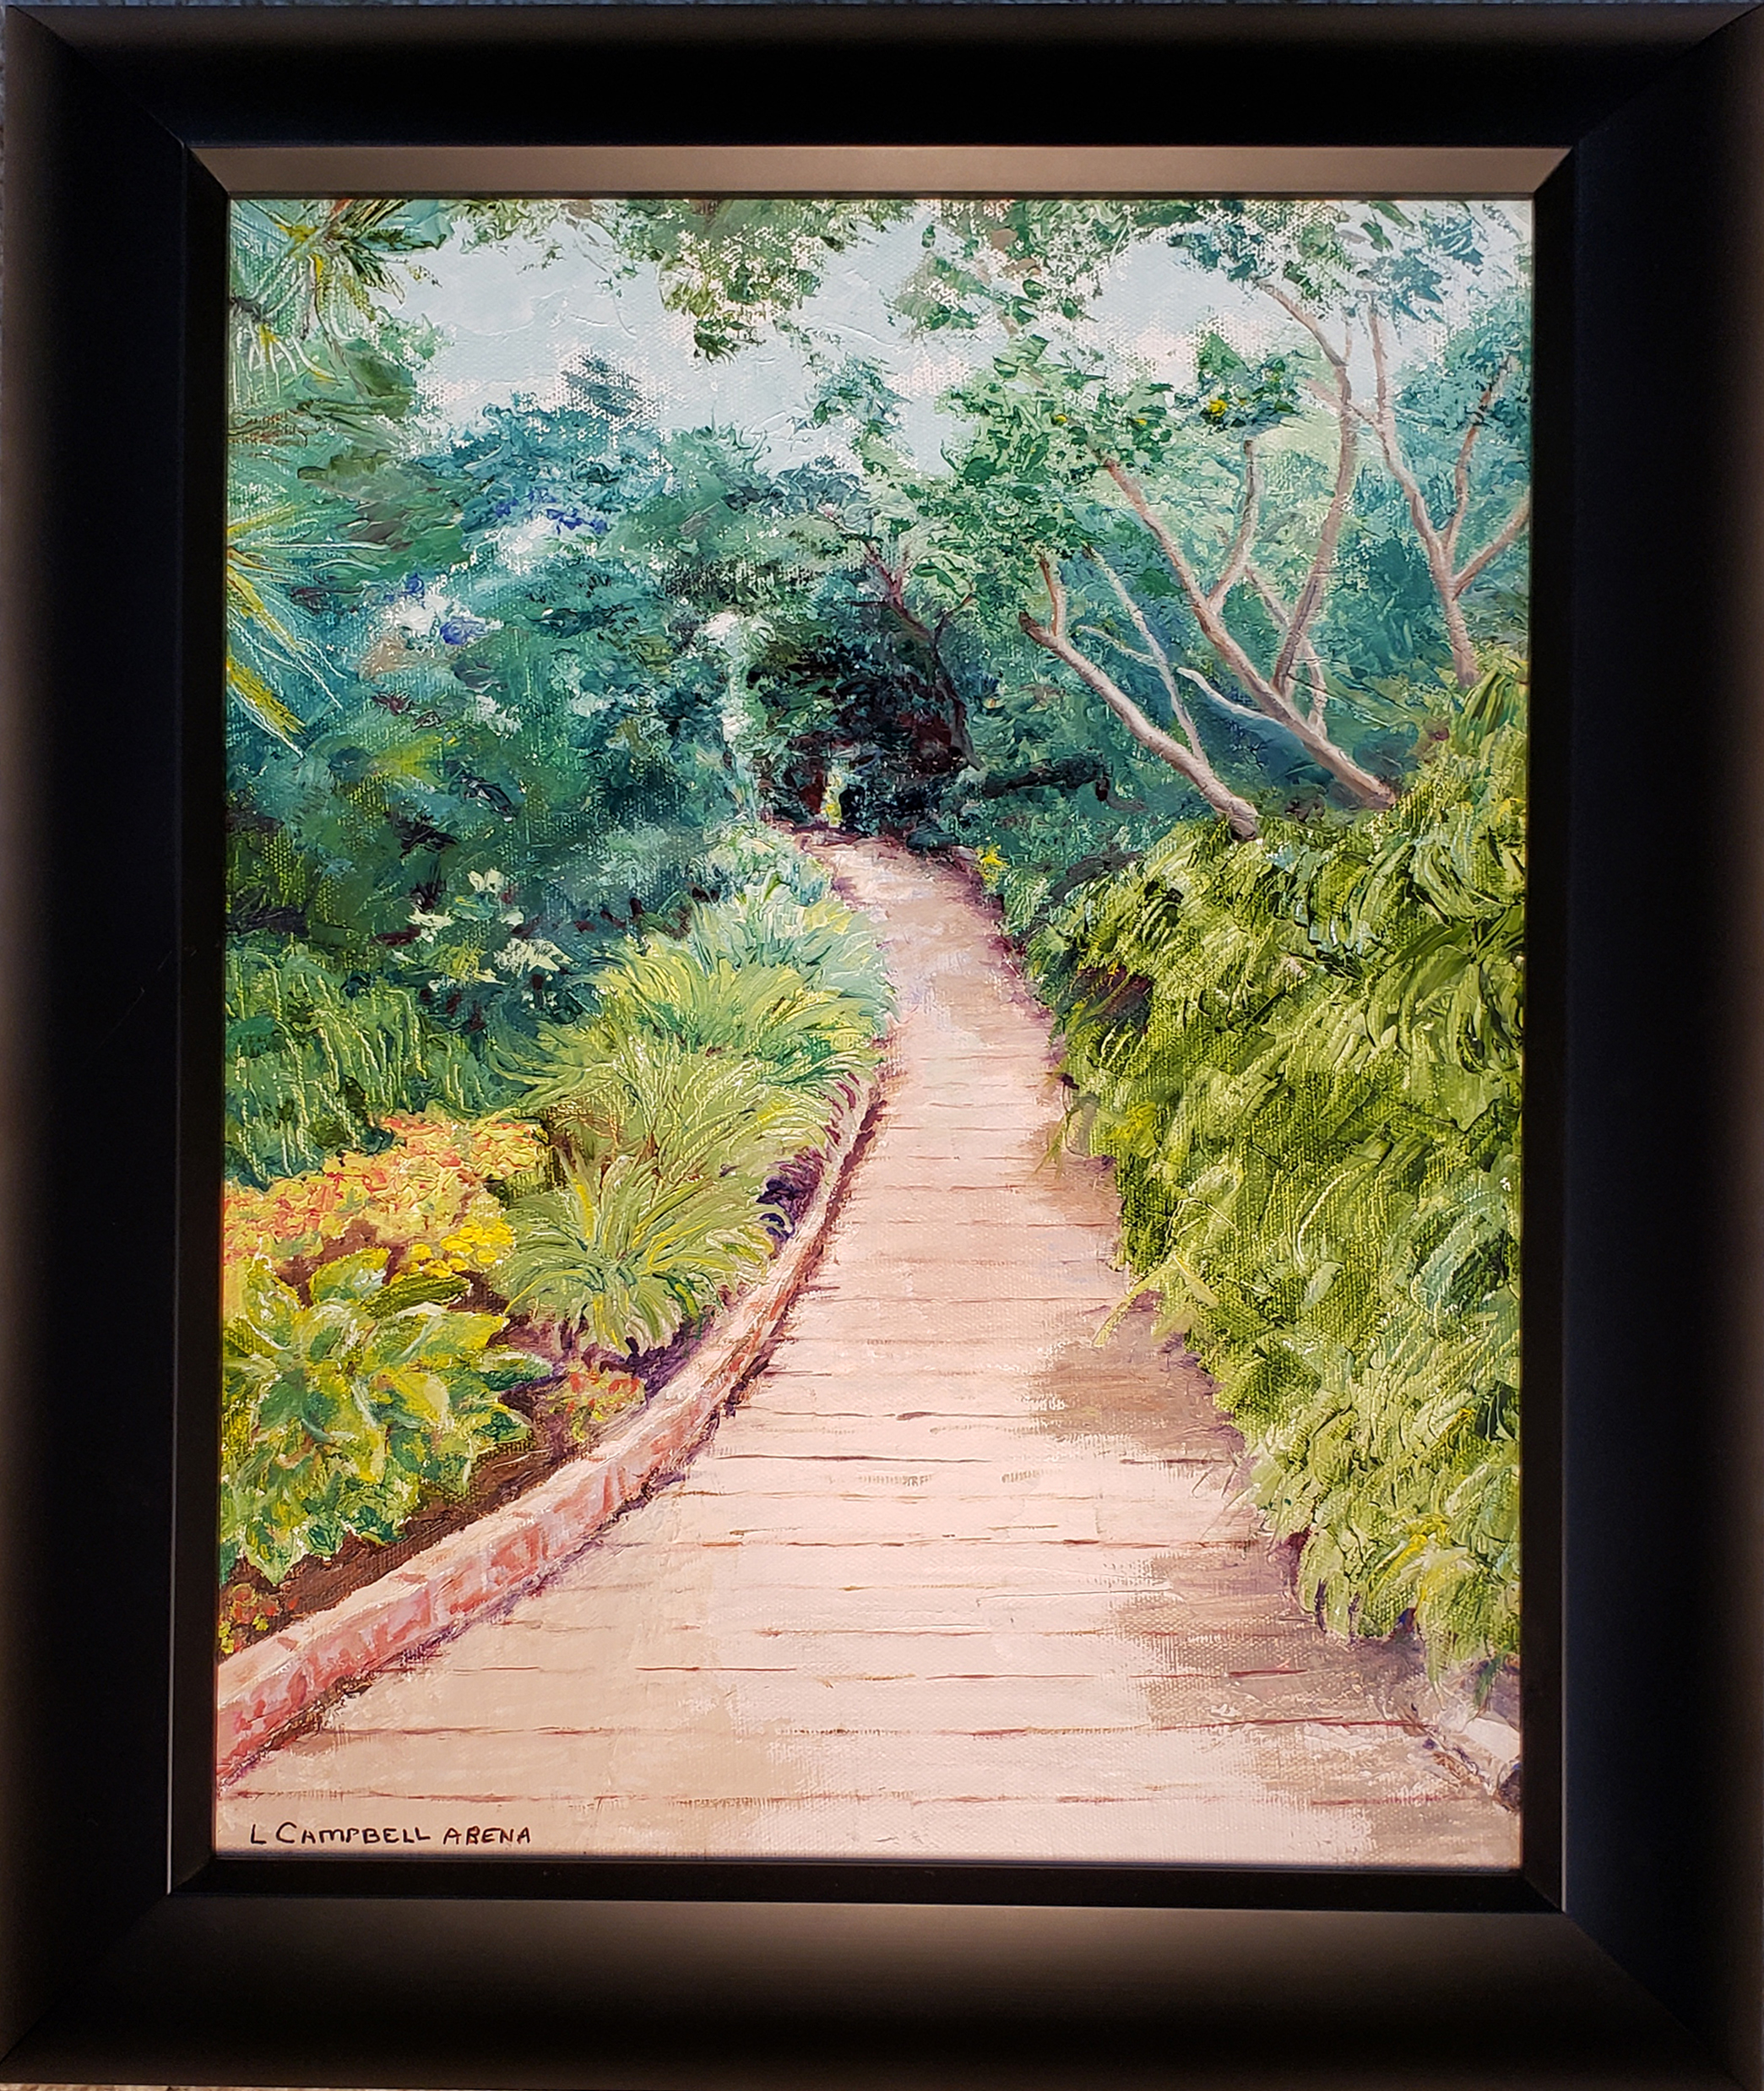 Garden Path, Wildwood, NJ - Linda Campbell Arena